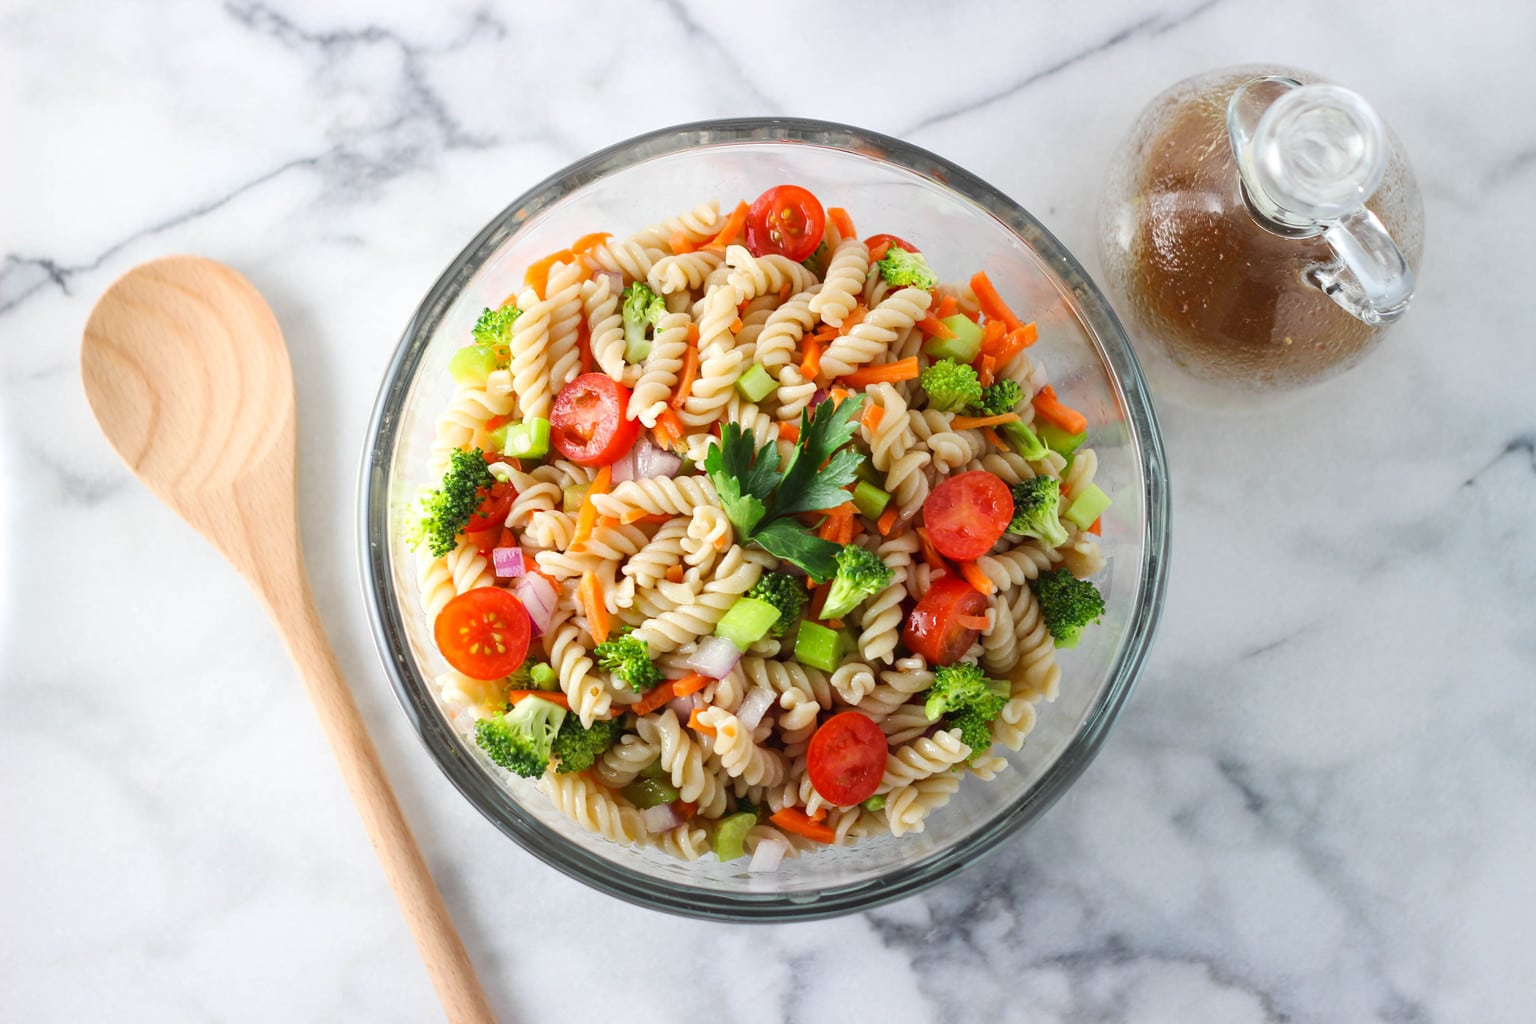 Healthy Italian Pasta Salad That Is Great For Work School Or Even A Pool Party